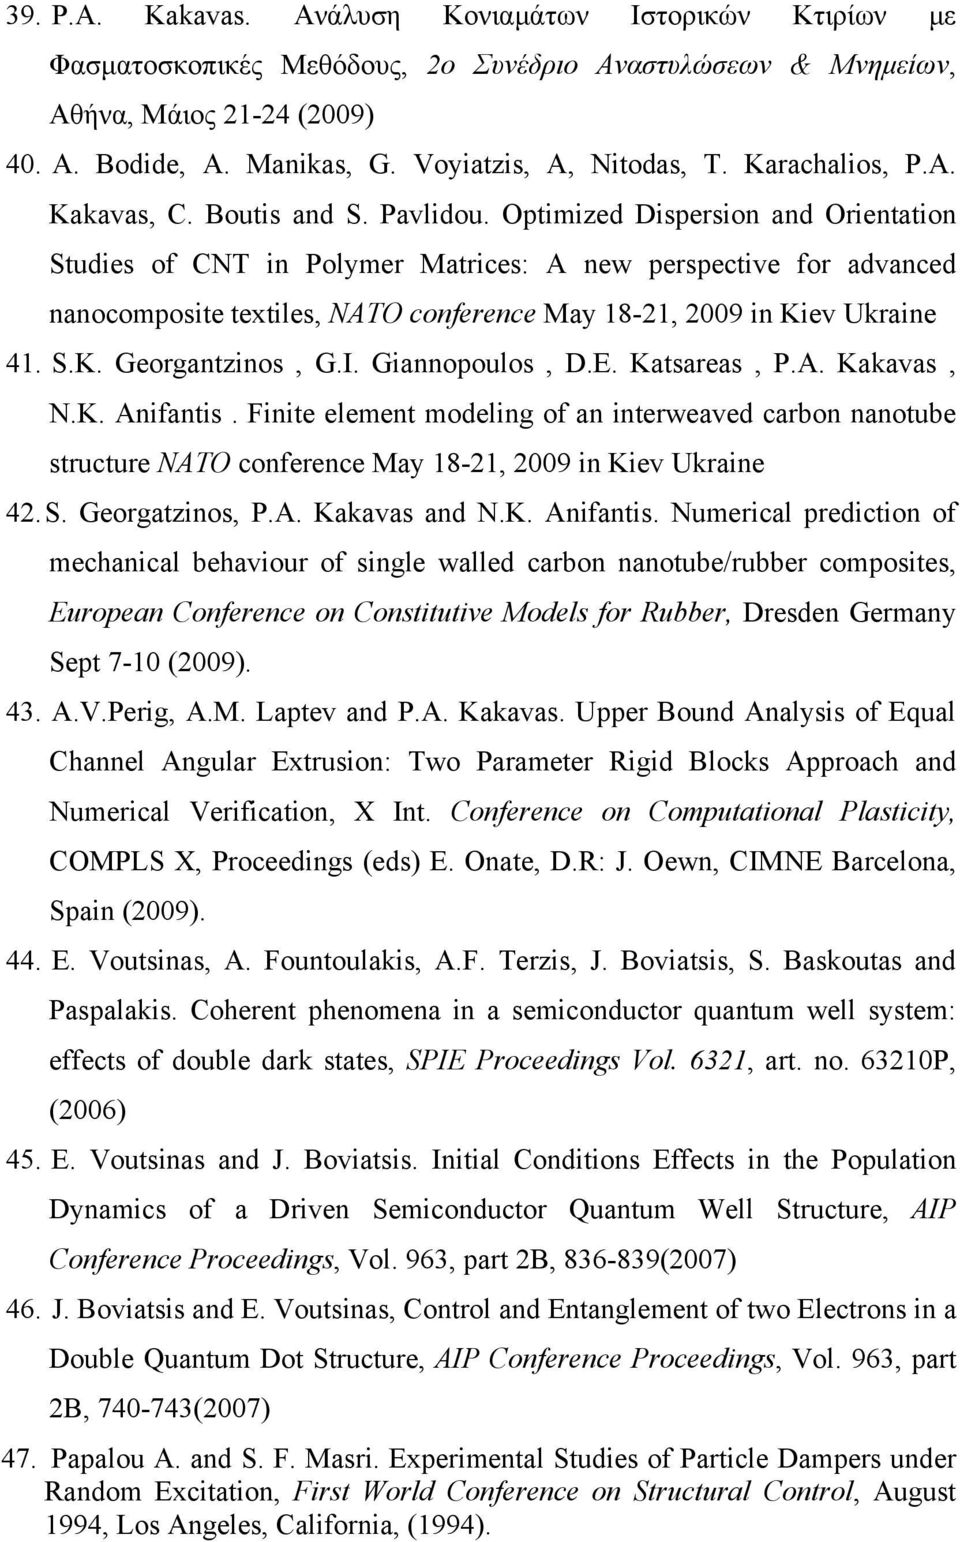 Optimized Dispersion and Orientation Studies of CNT in Polymer Matrices: A new perspective for advanced nanocomposite textiles, NATO conference May 18-21, 2009 in Kiev Ukraine 41. S.K. Georgantzinos, G.